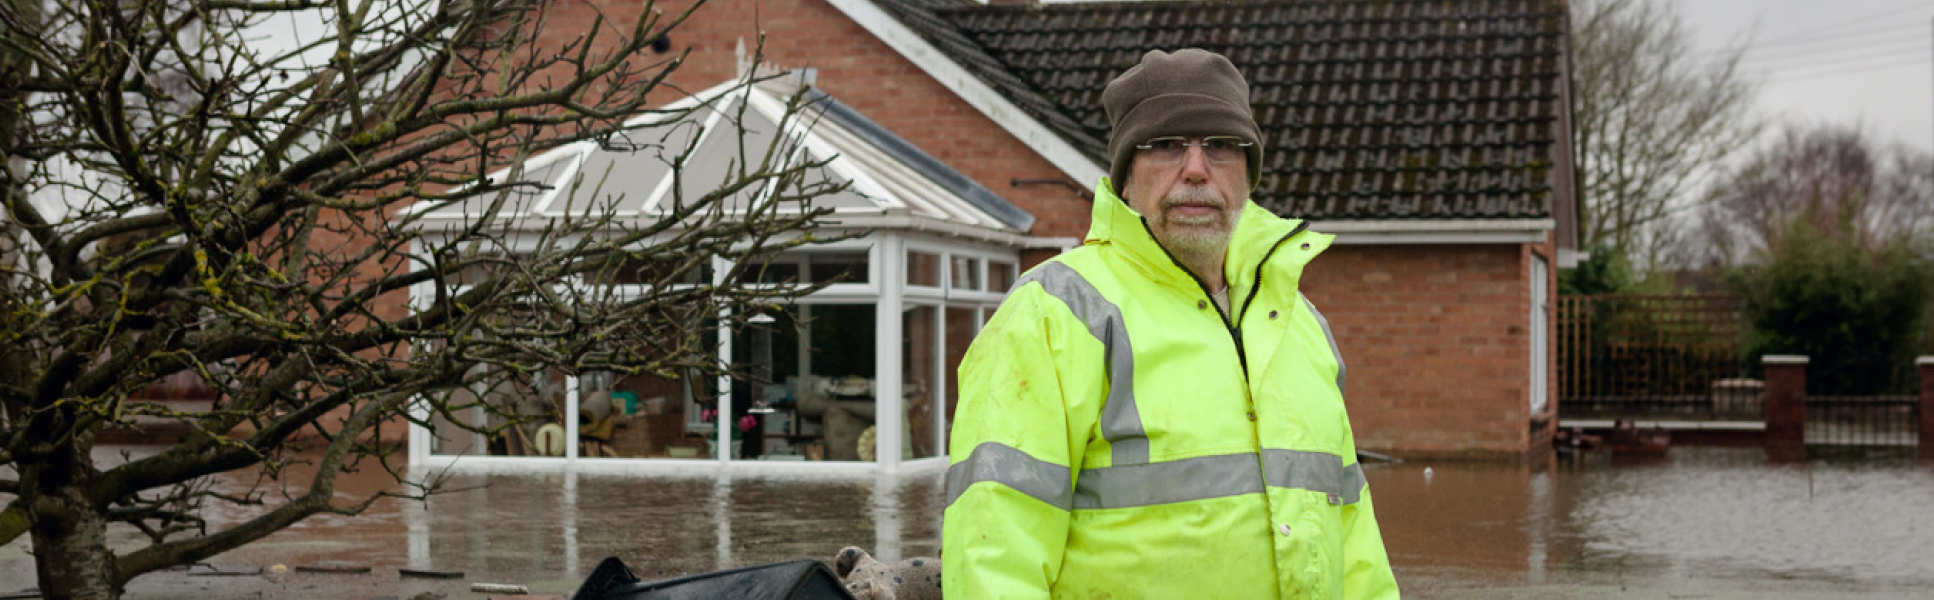 man in high viz standing thigh deep in flooded surroundings with house behind him